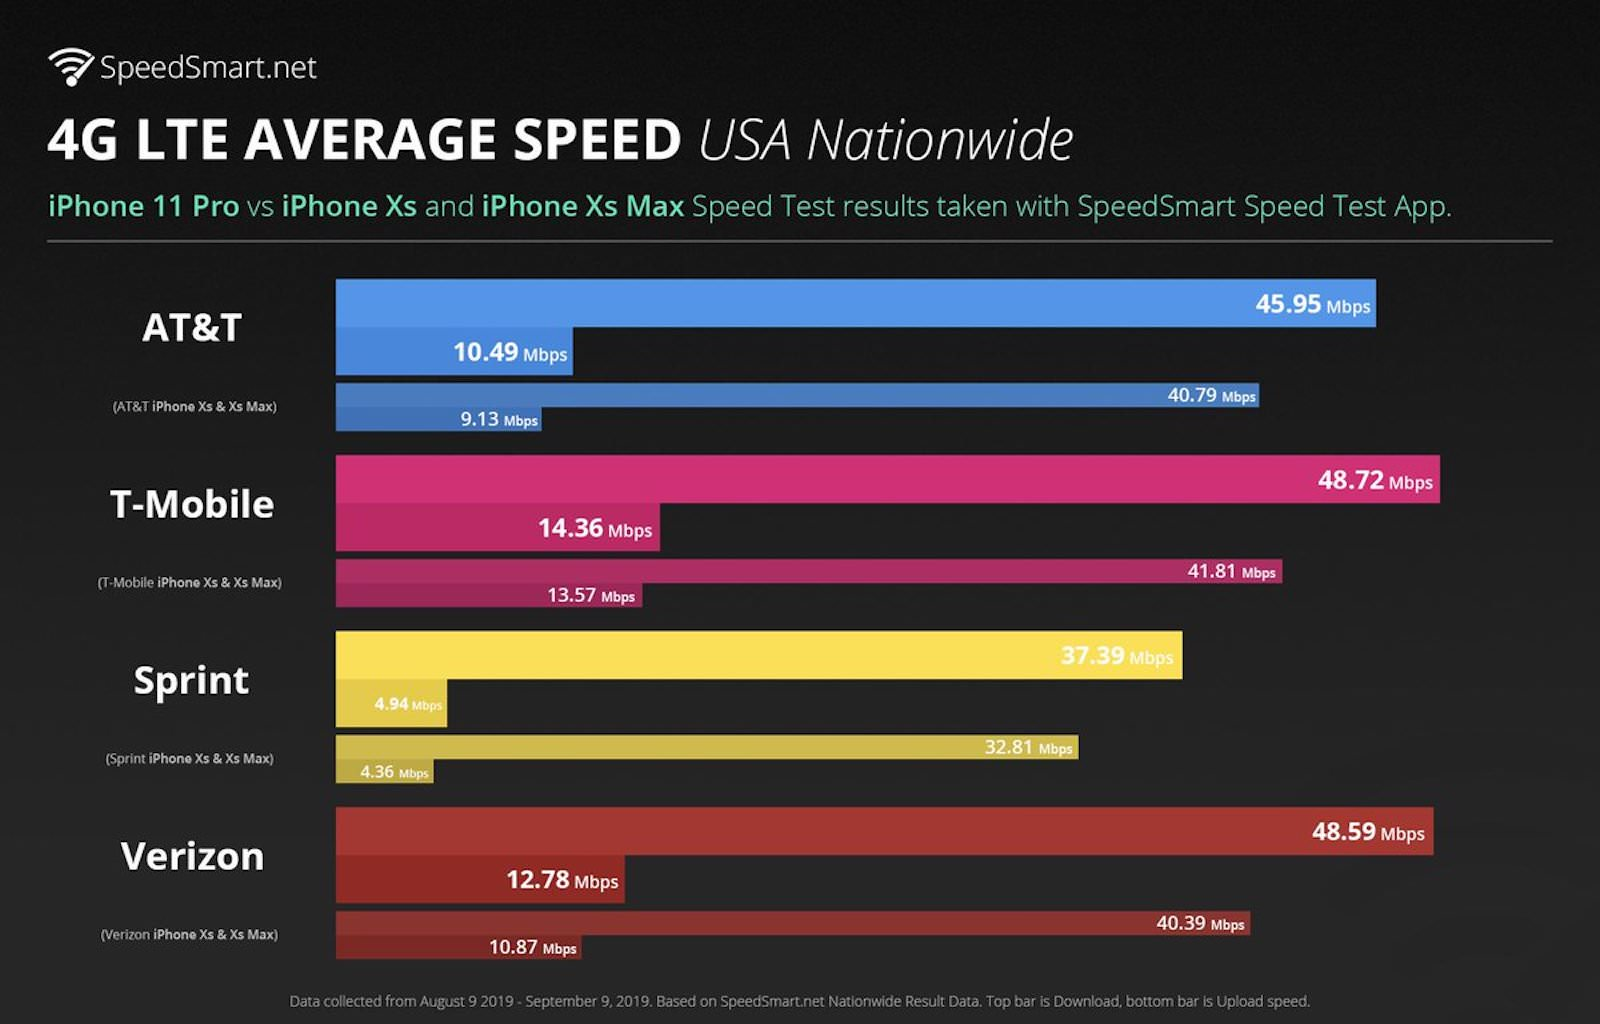 Iphone11pro gets faster lte